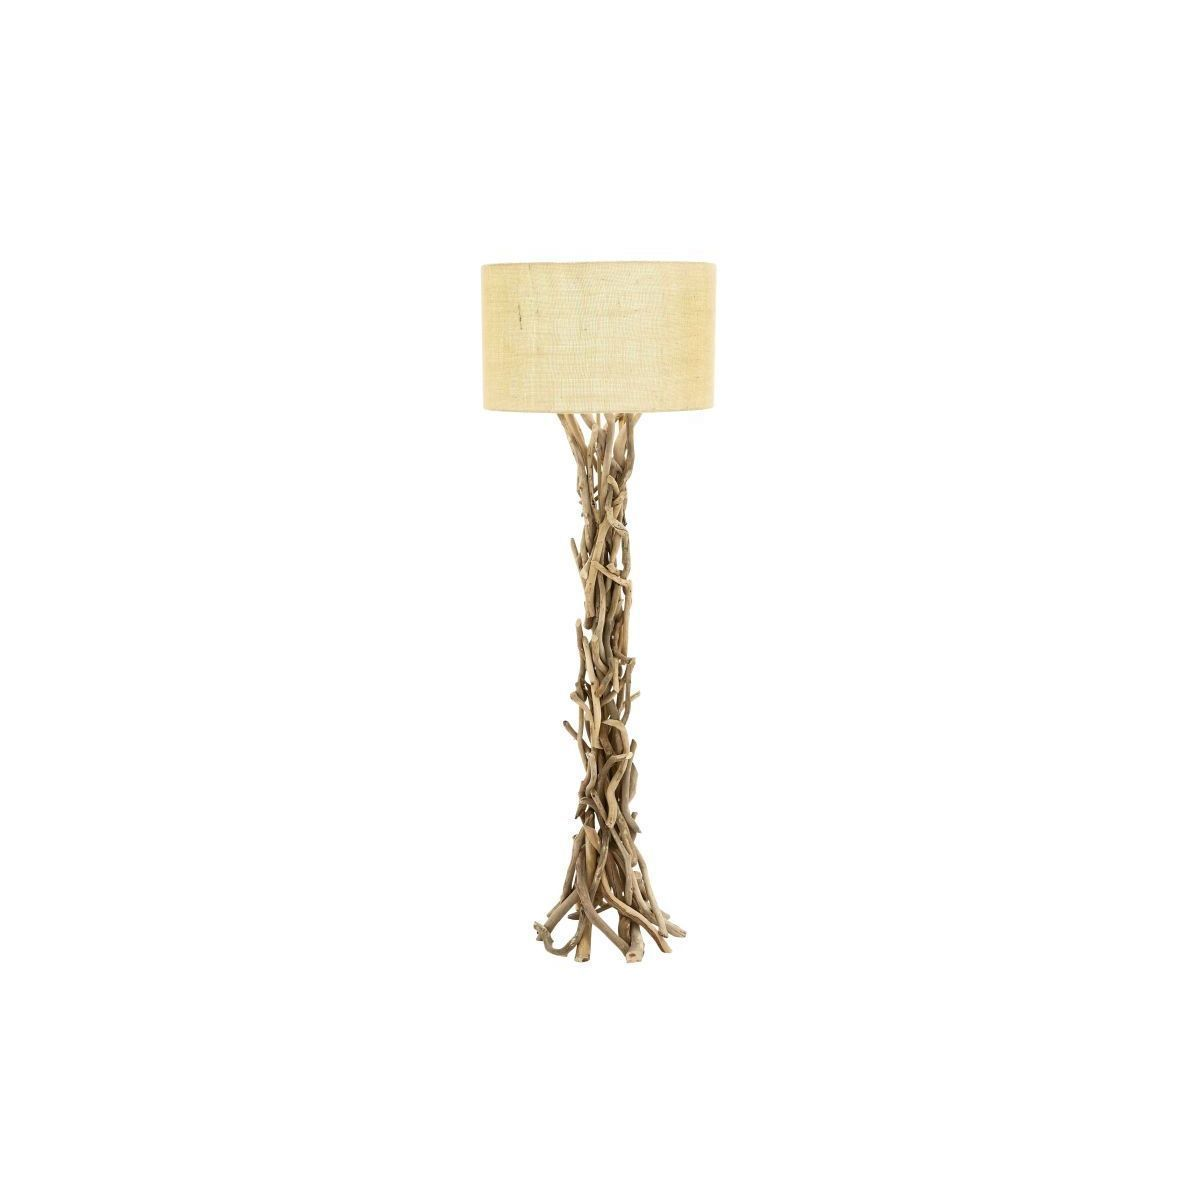 jekyll shade driftwood floor blanchard lamp a stock with